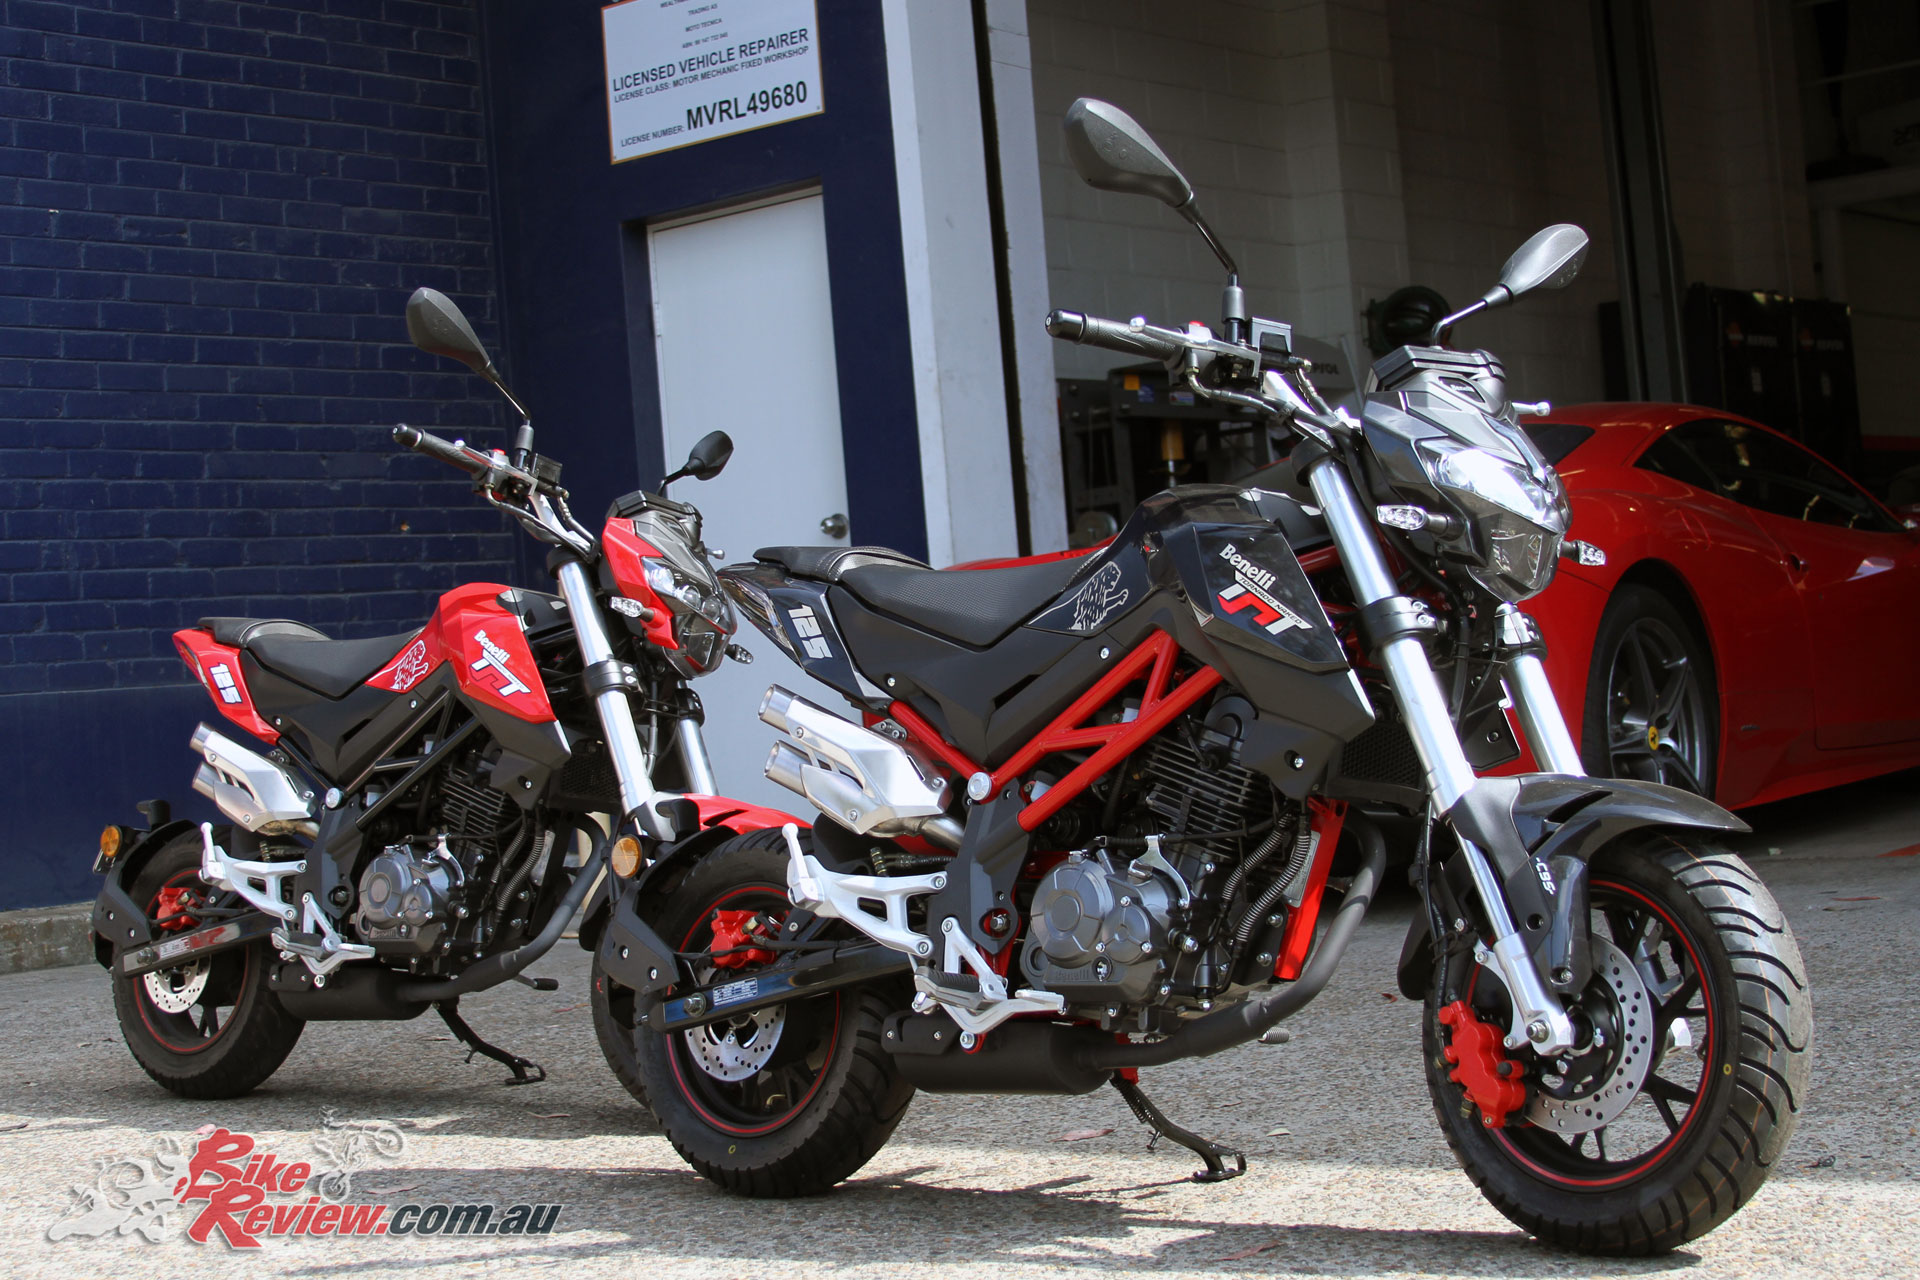 The Benelli TnT 125 in Black, and Red. The Black version features a cool red frame, while a White version is also available.